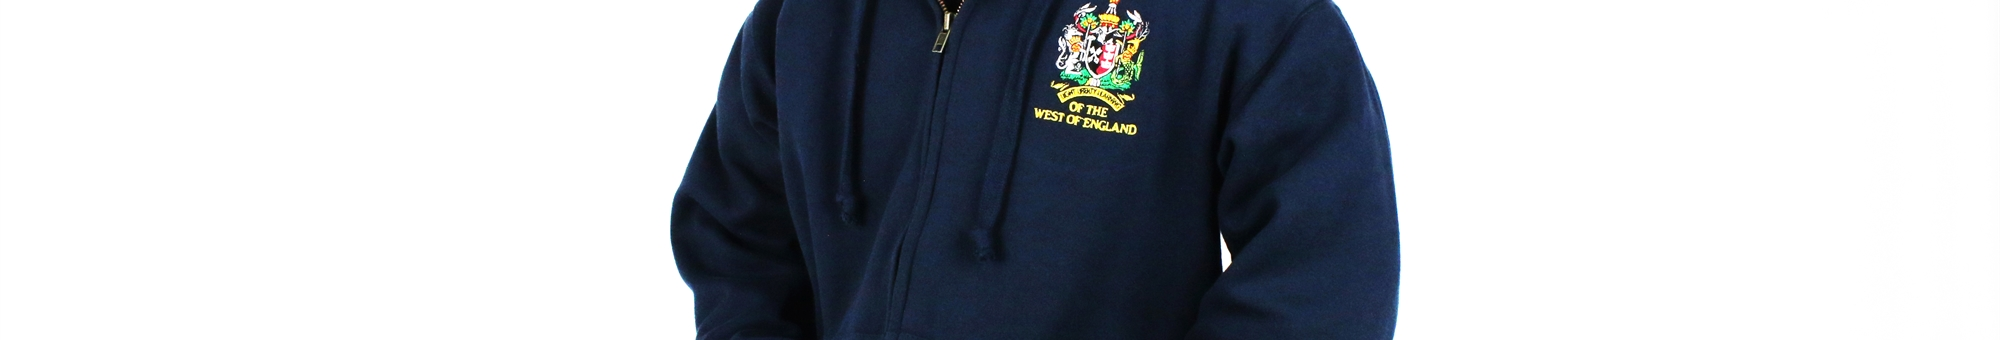 Get your UWE branded clothing and accessories online.